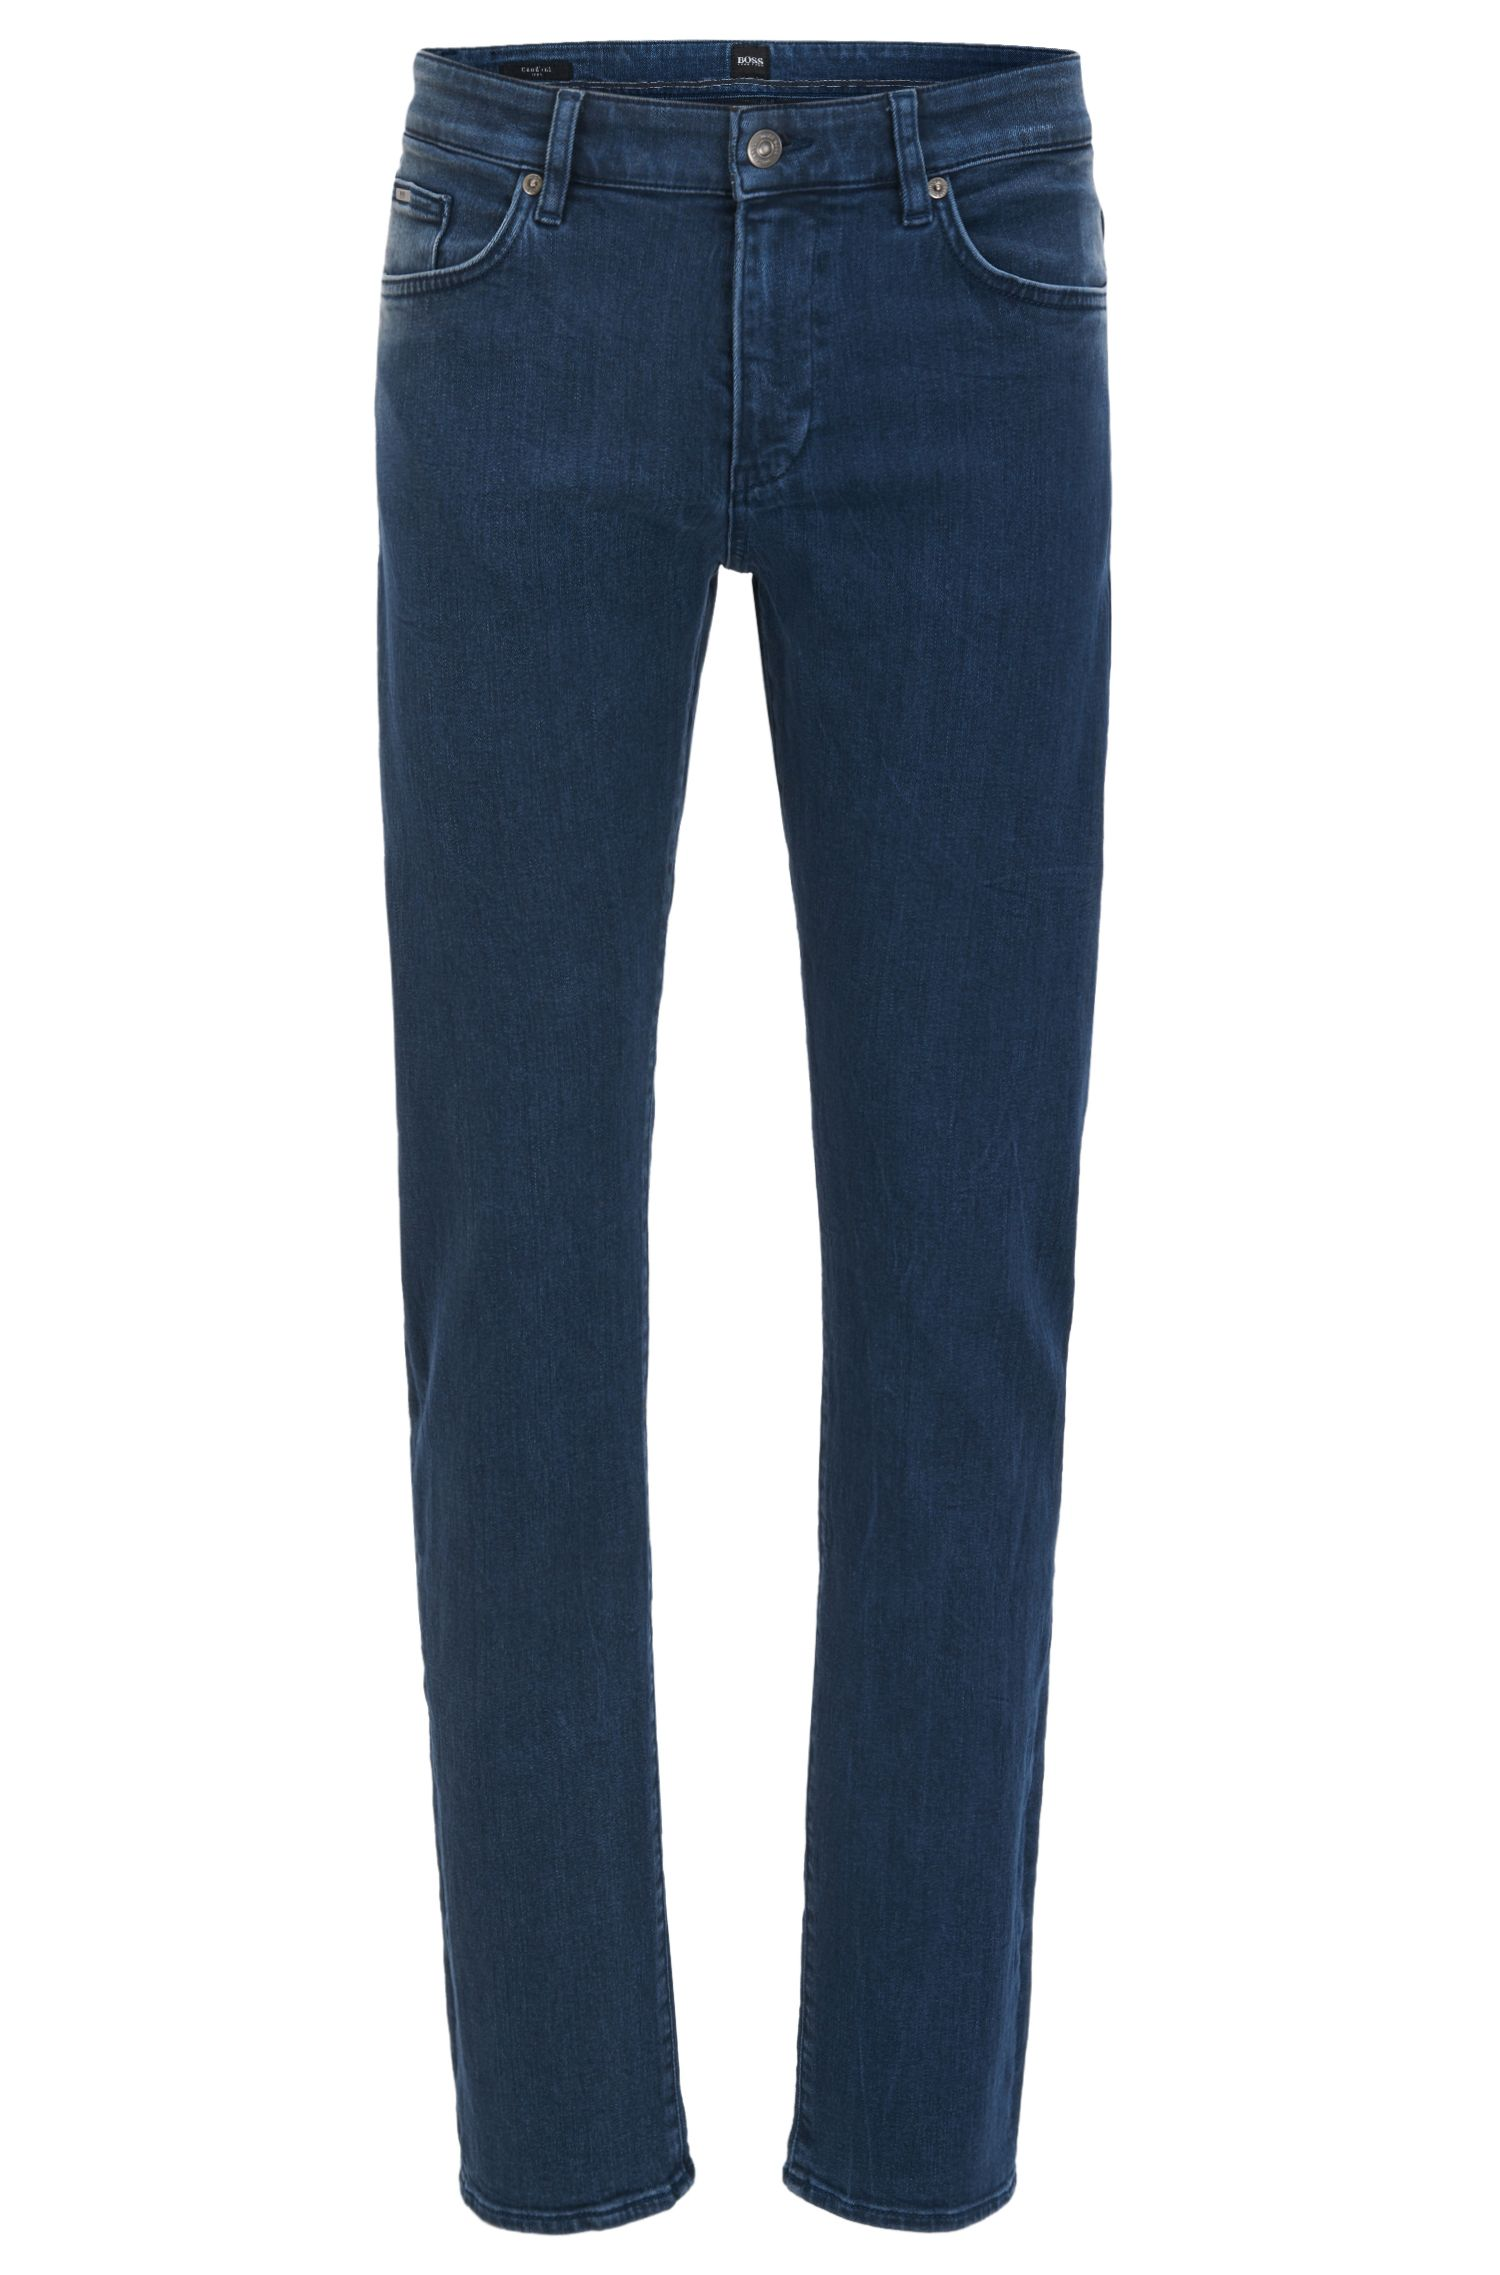 Slim-fit jeans in Italian stretch denim